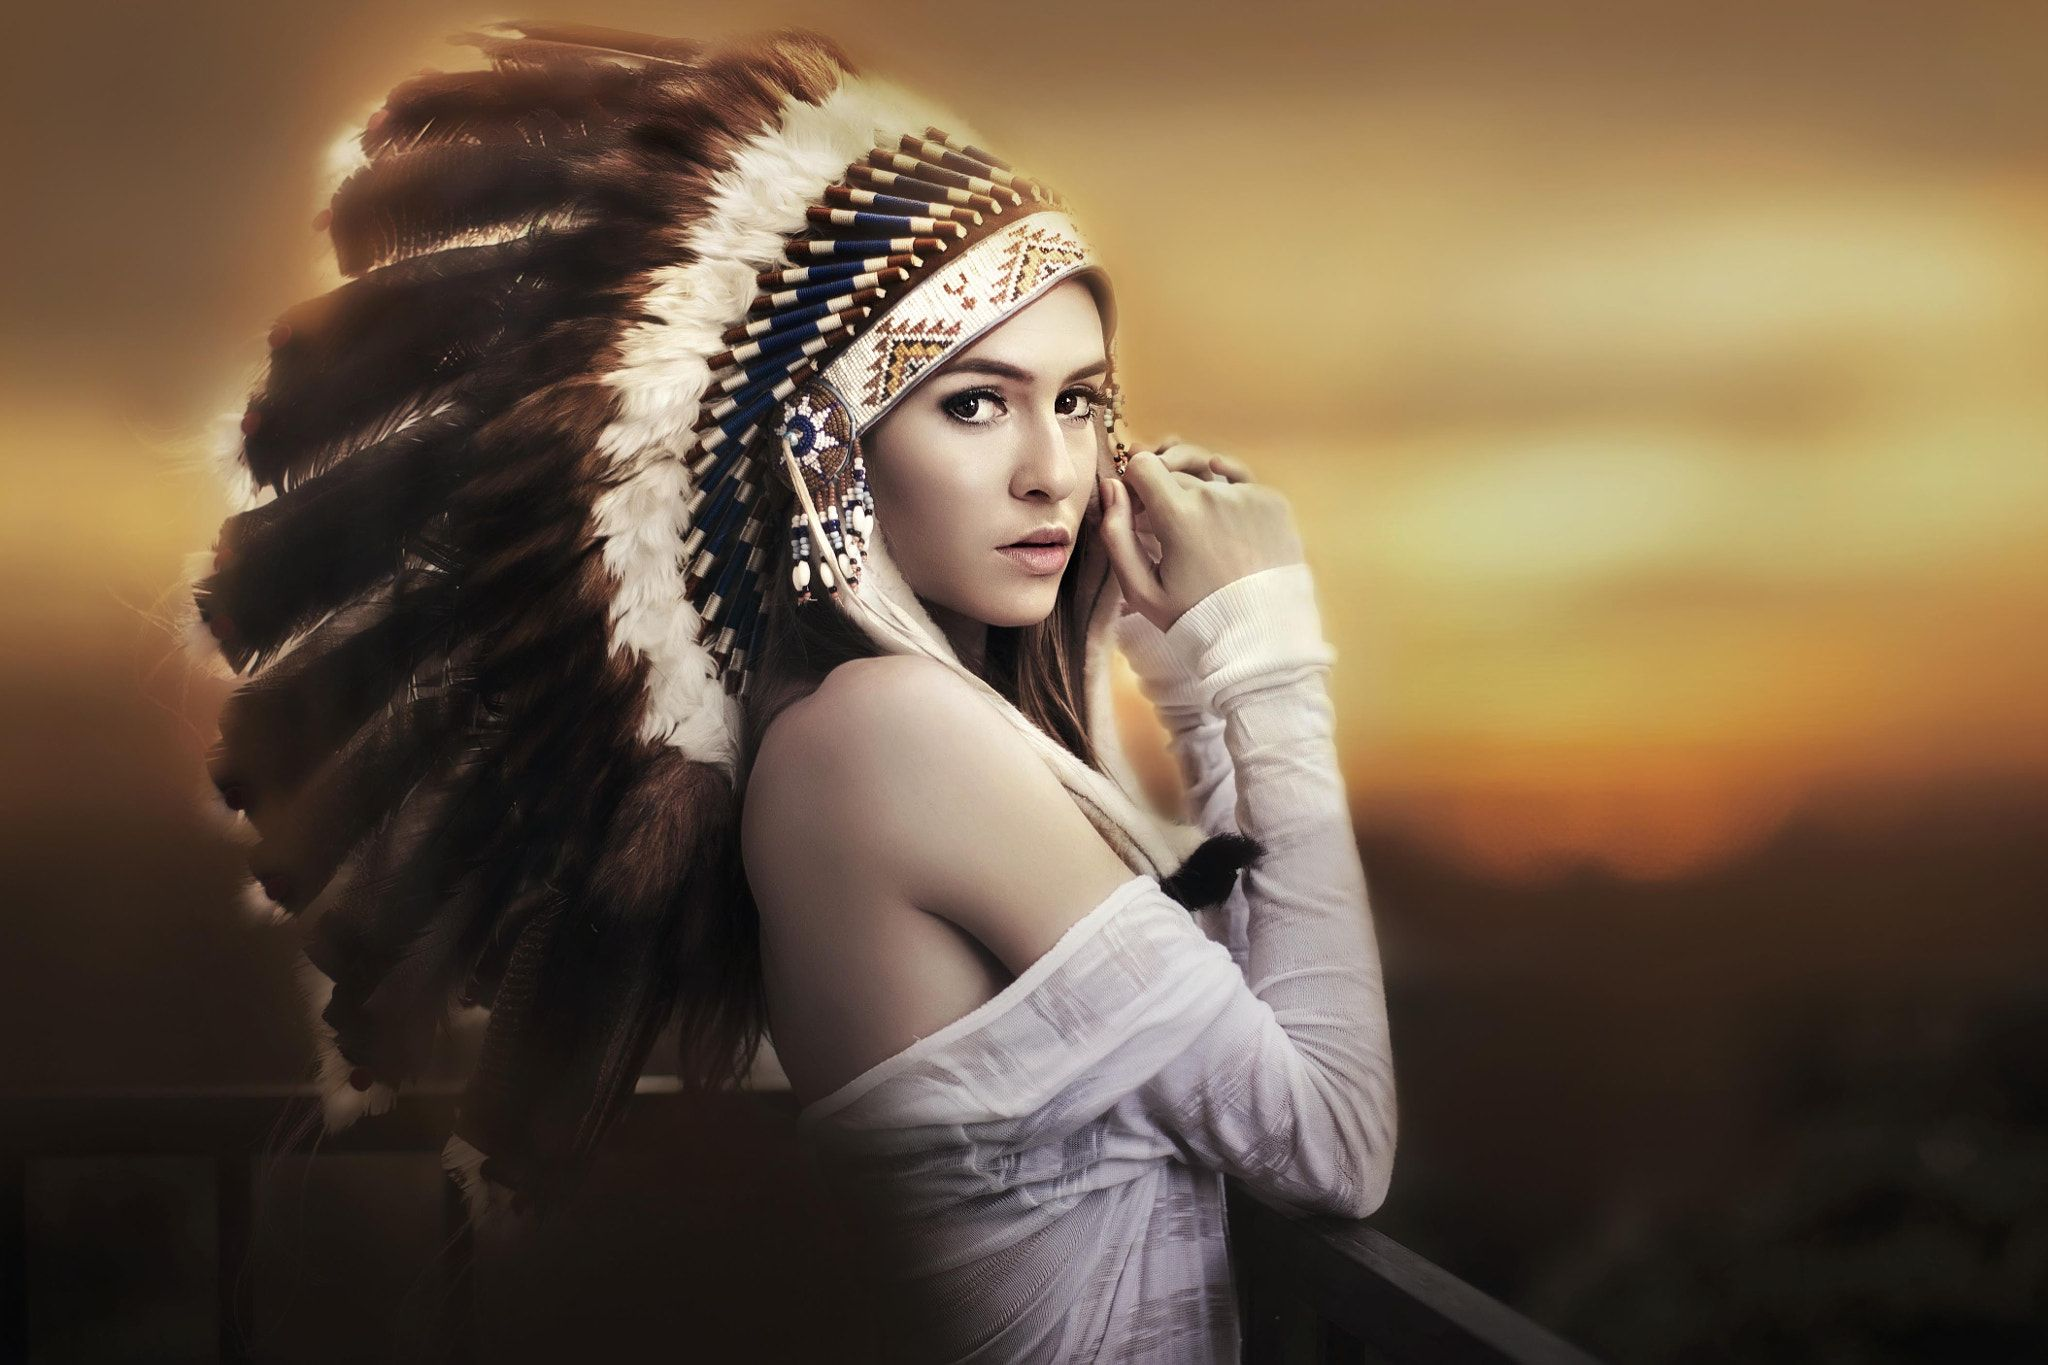 Lonely Indian - null | Native american photoshoot, Native